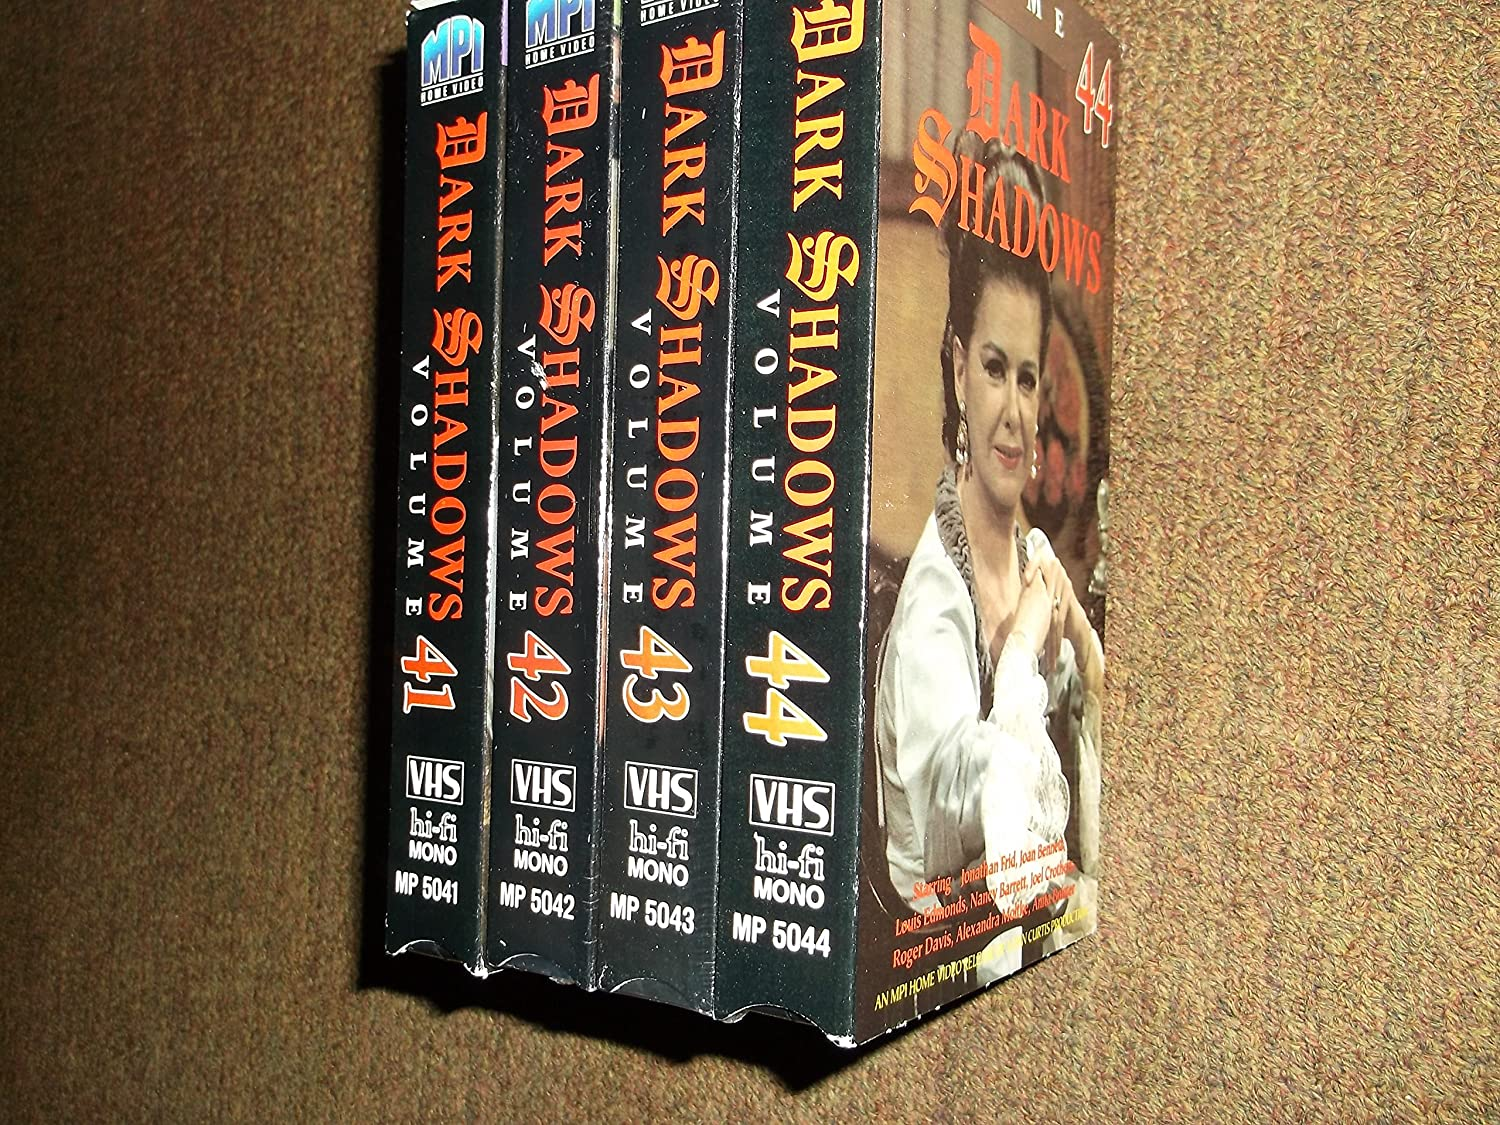 Dark Shadows Vol 41-44 VHS